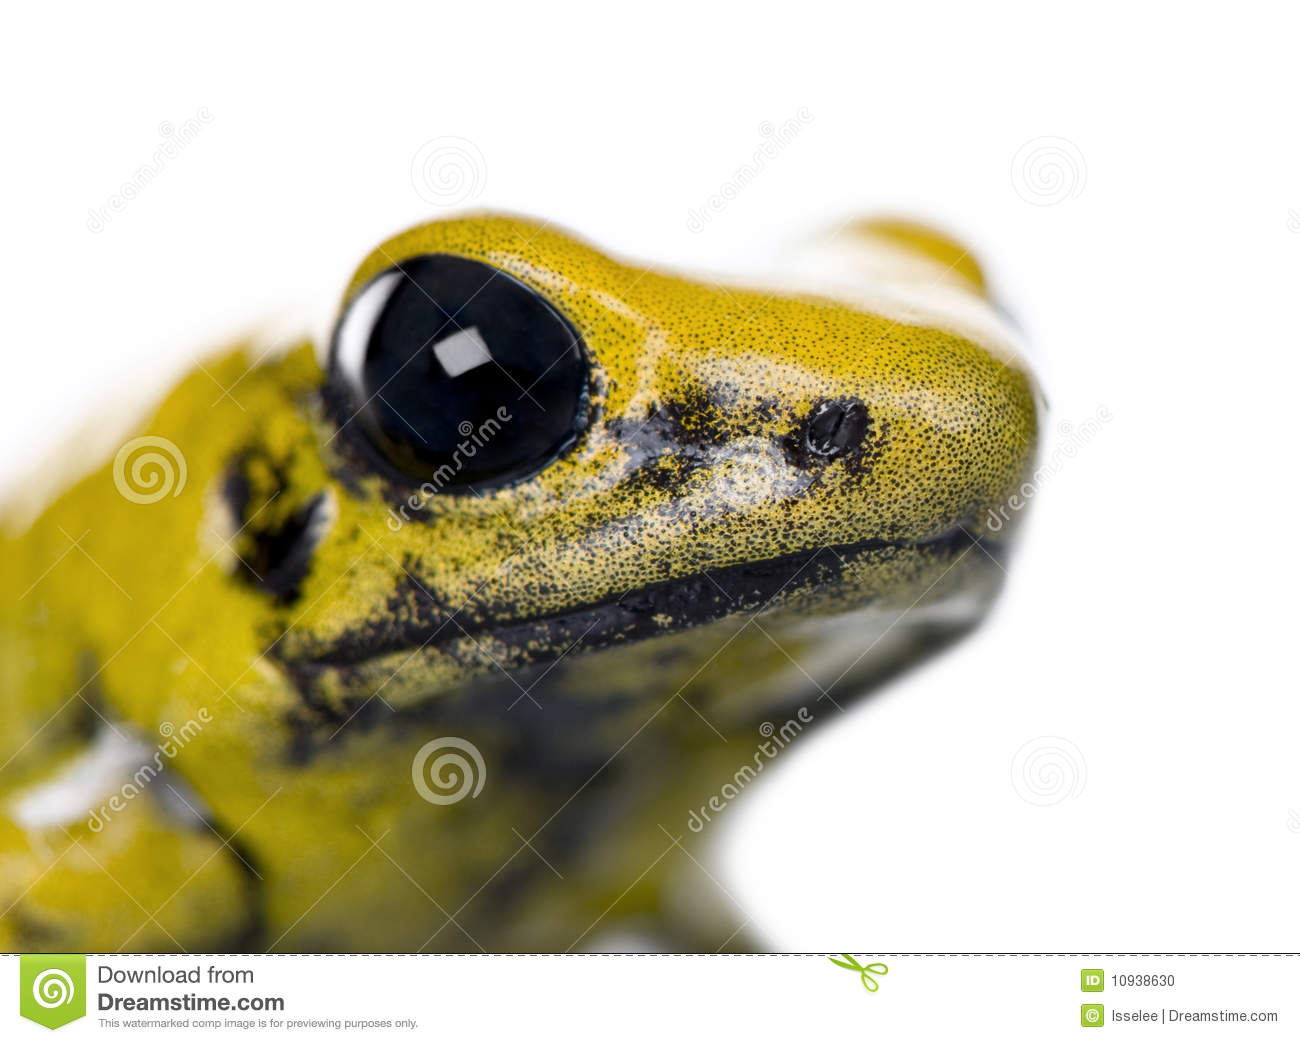 Golden Poison Frog in front of a white background